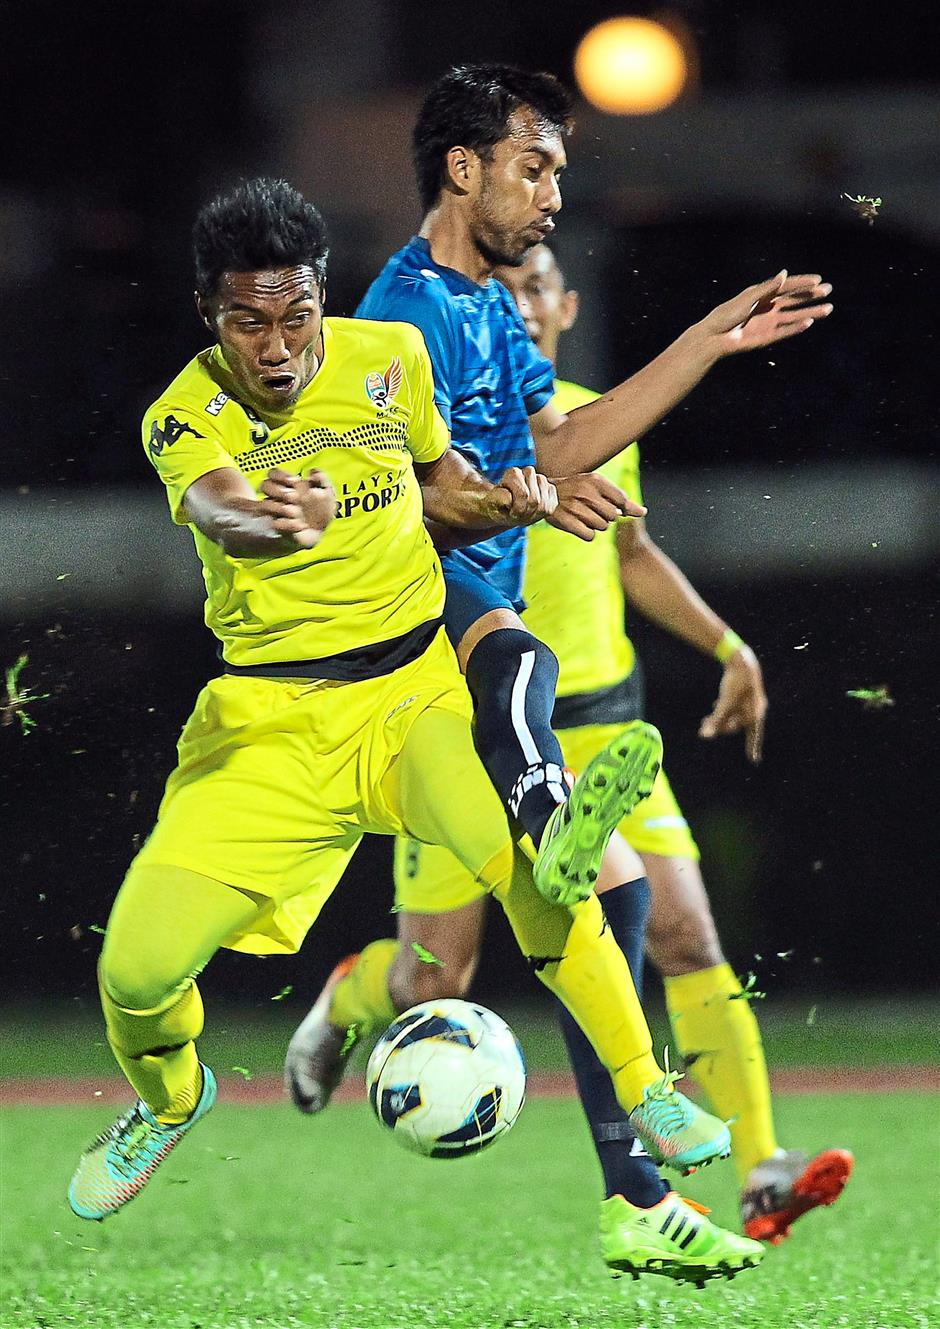 No way out: Sultan Sulaiman Club's Rezayulindra Ramlan (right) fights for the ball with MAFC's Hazwan Hassan.